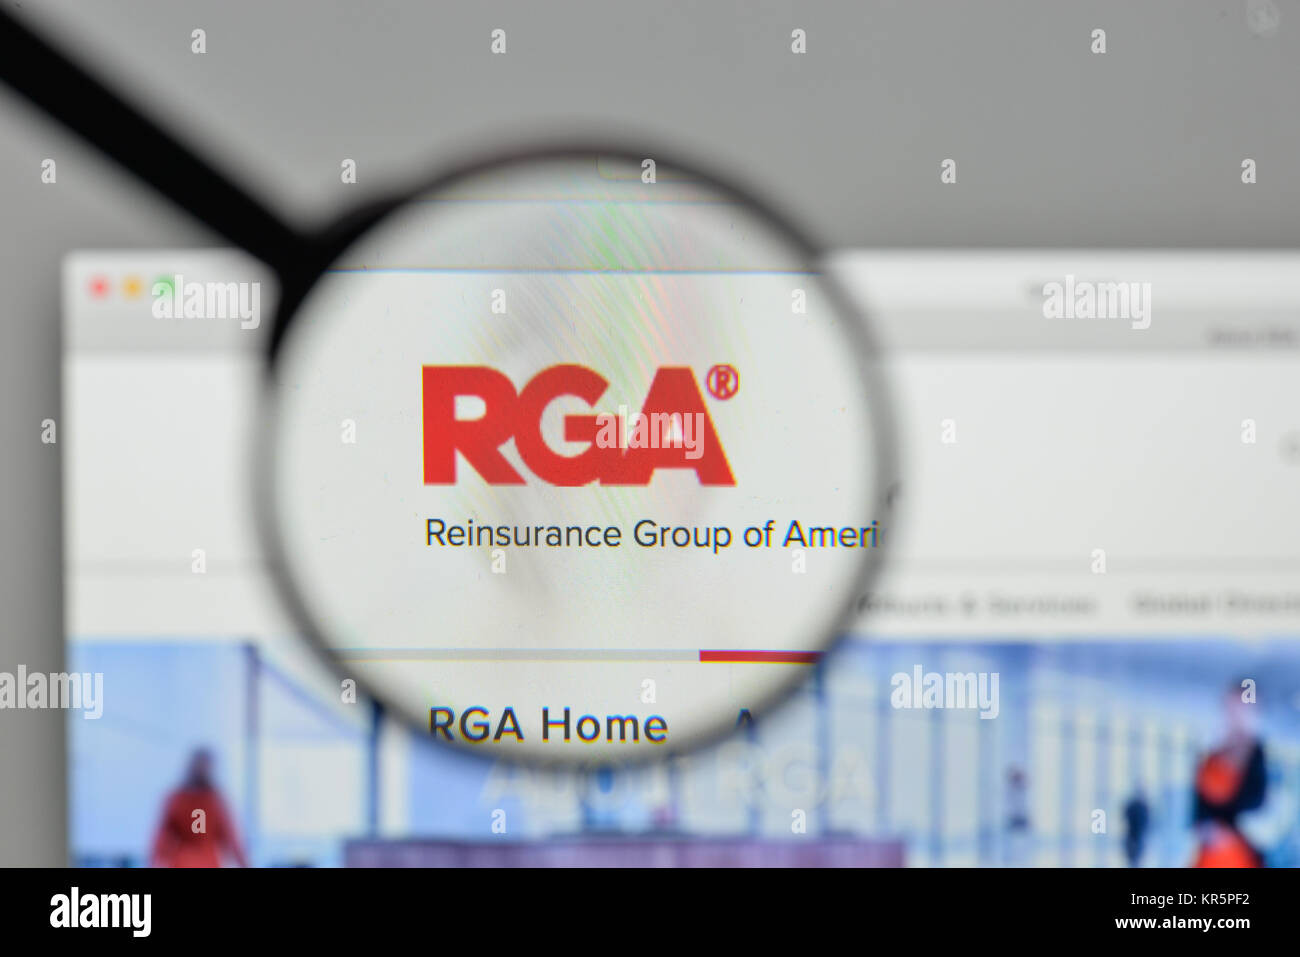 Milan, Italy - November 1, 2017: ReInsurance Group of America logo on the website homepage. - Stock Image